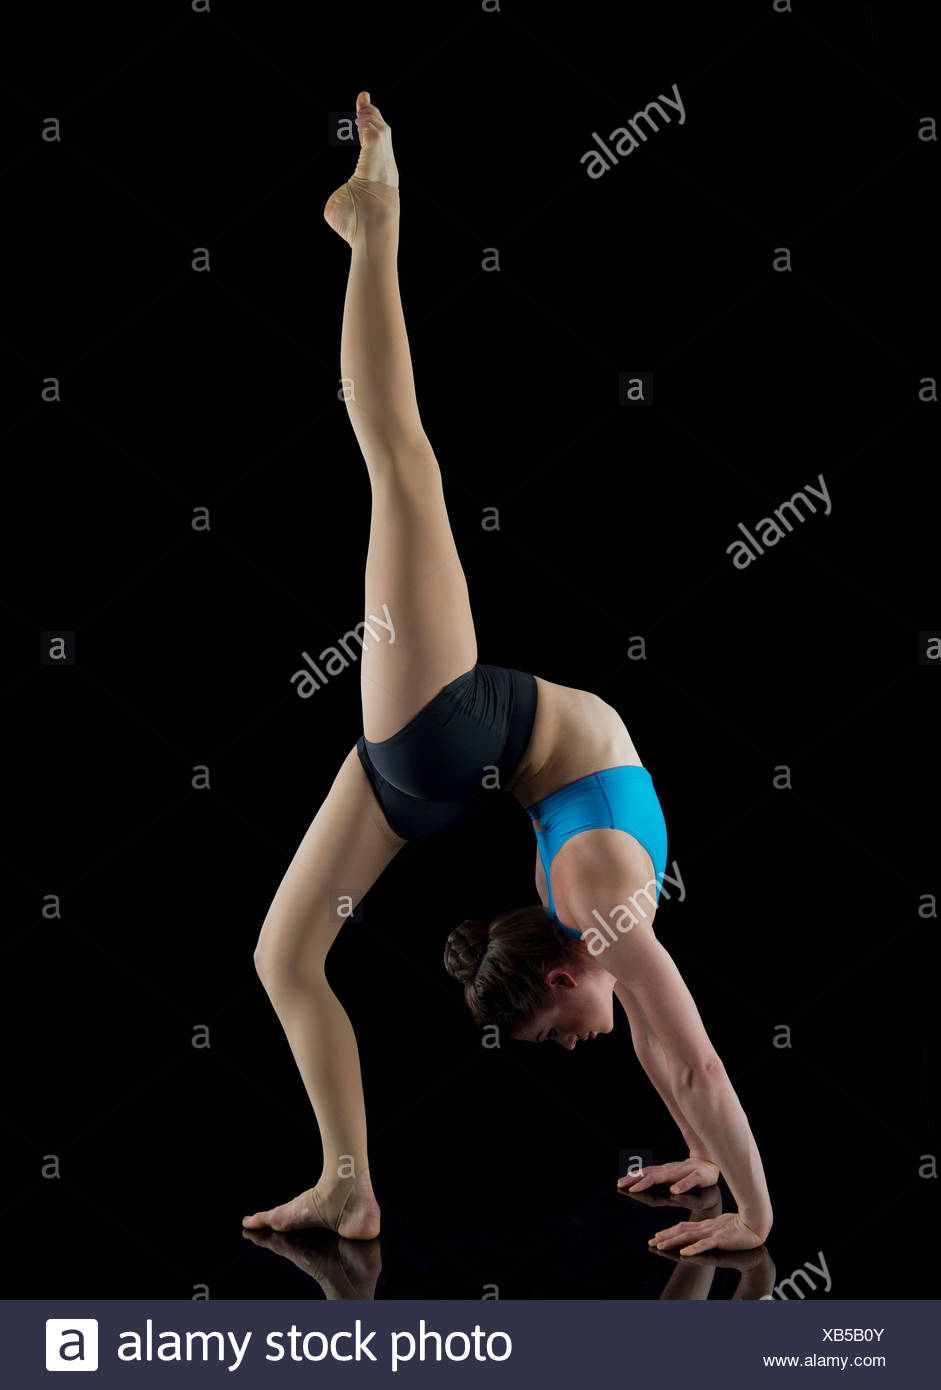 Acrobat performing in front of black background - Stock Image